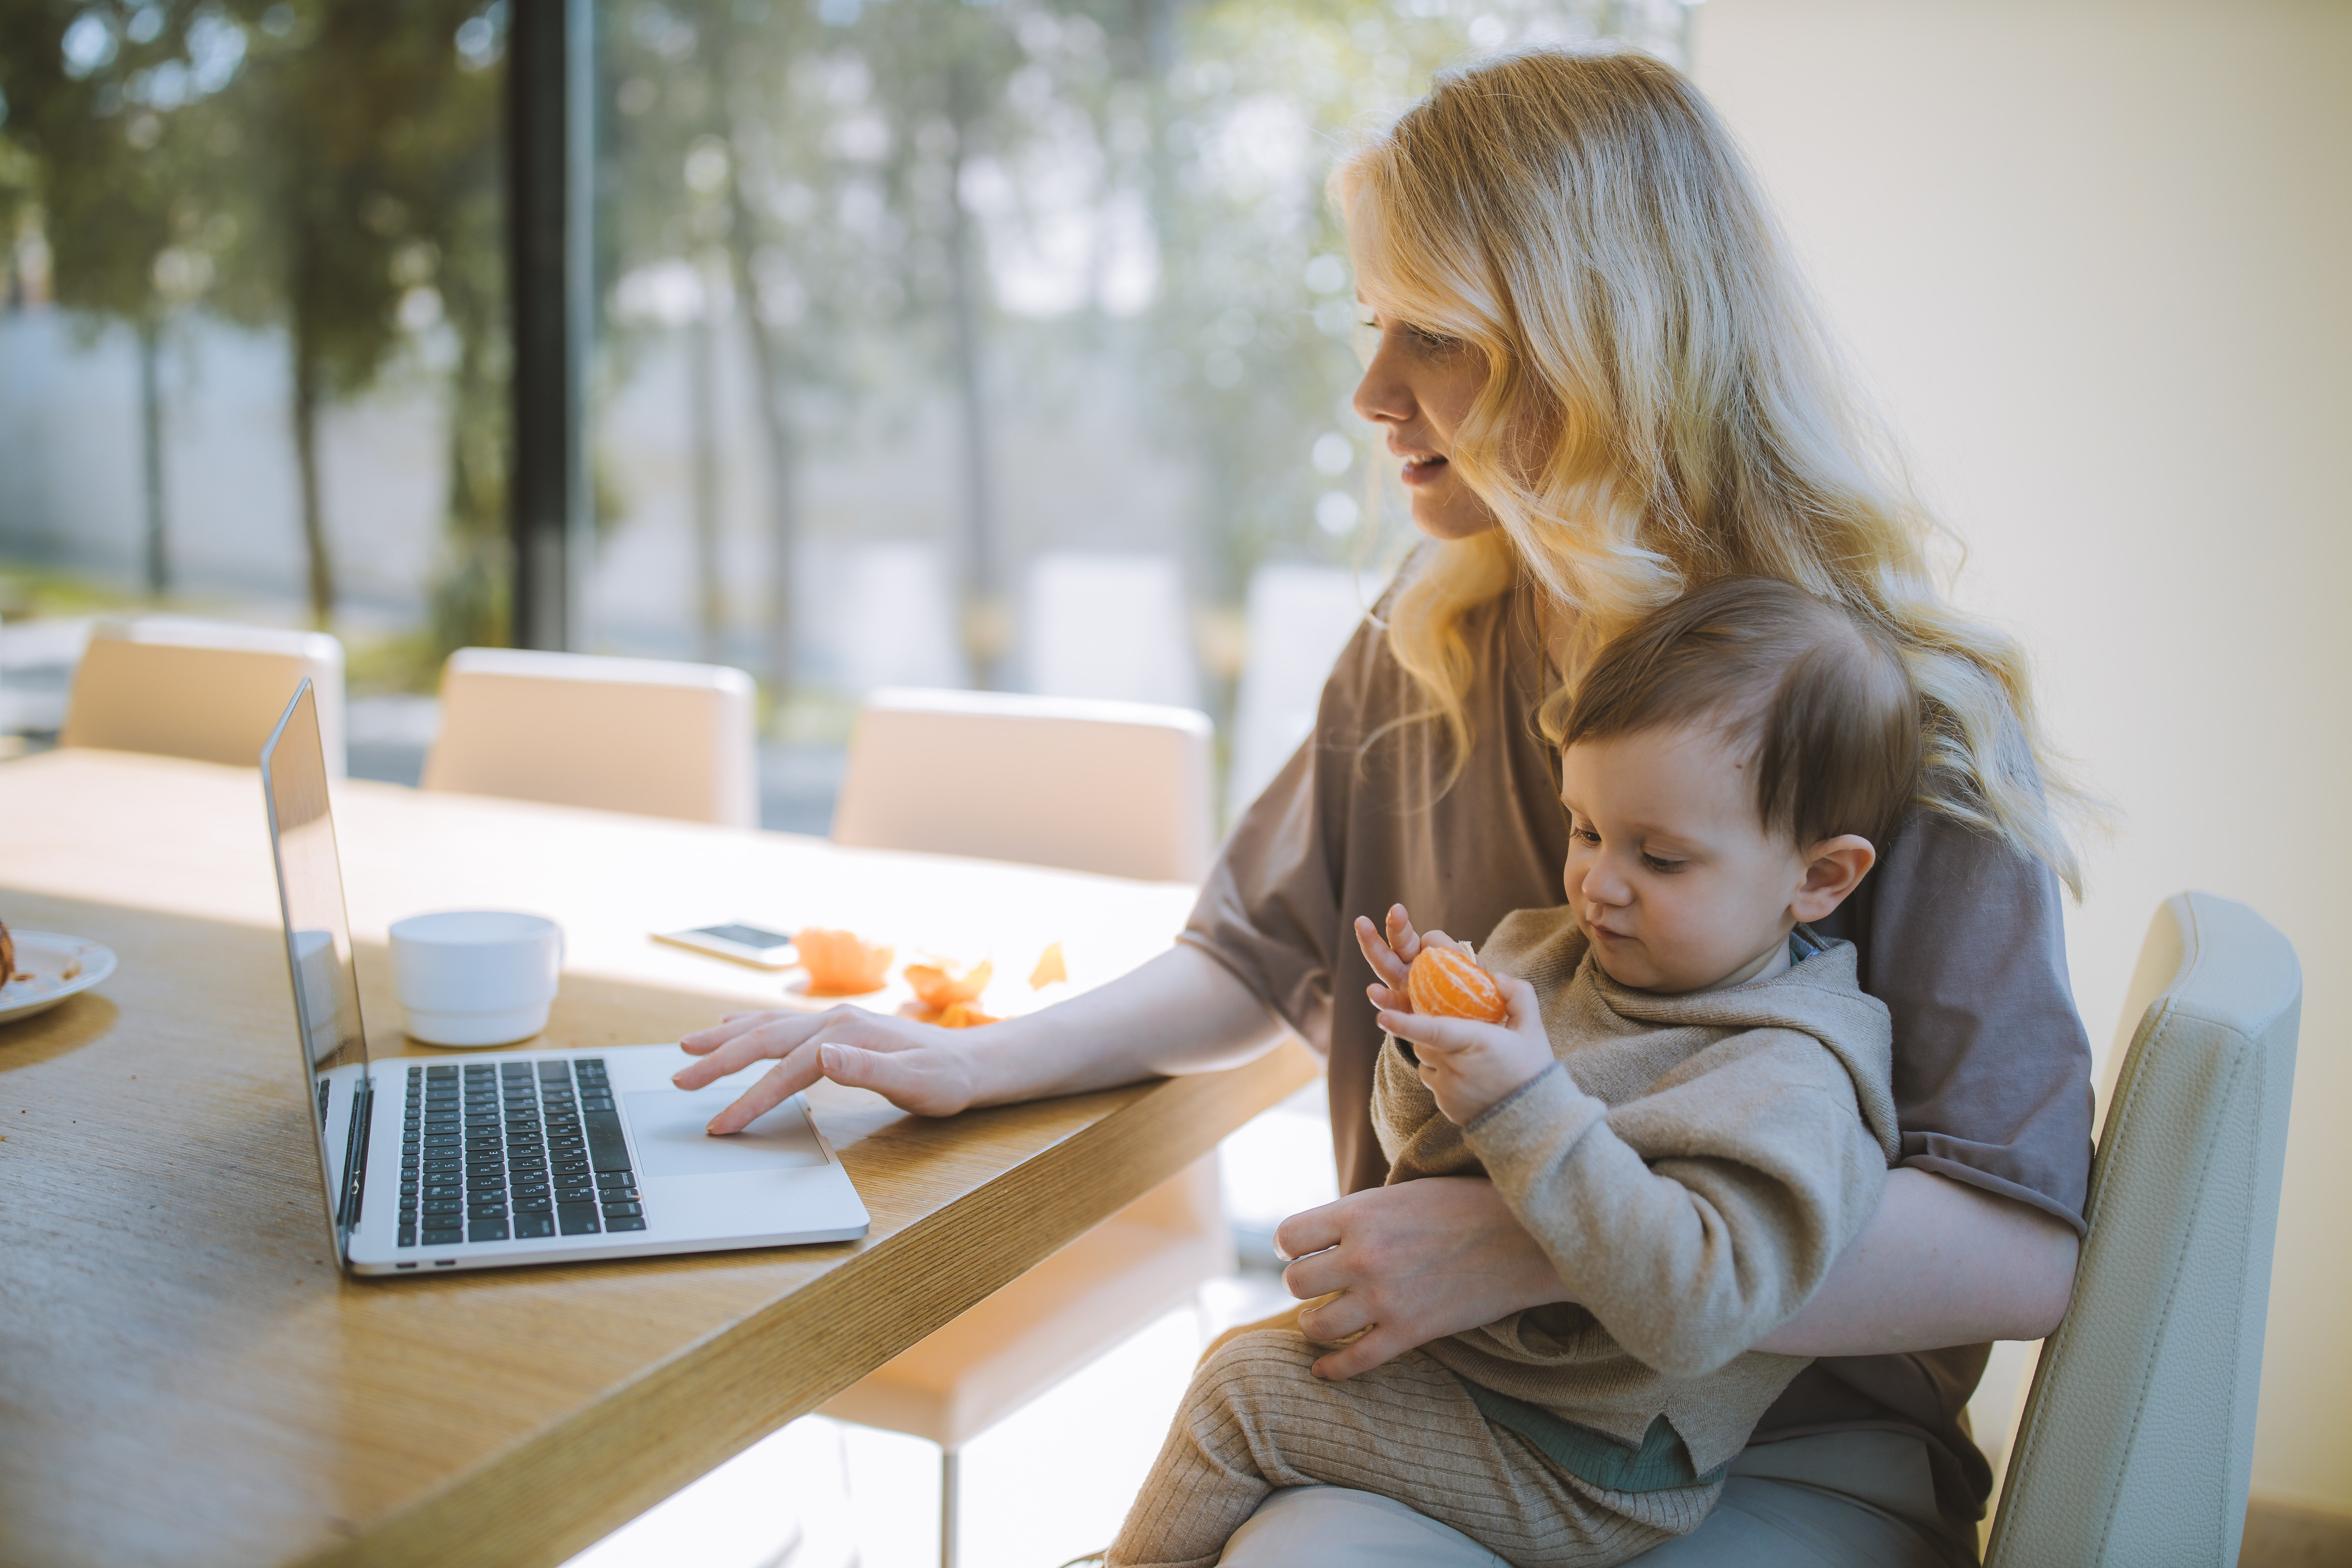 woman-carrying-her-baby-and-working-on-a-laptop-4079281